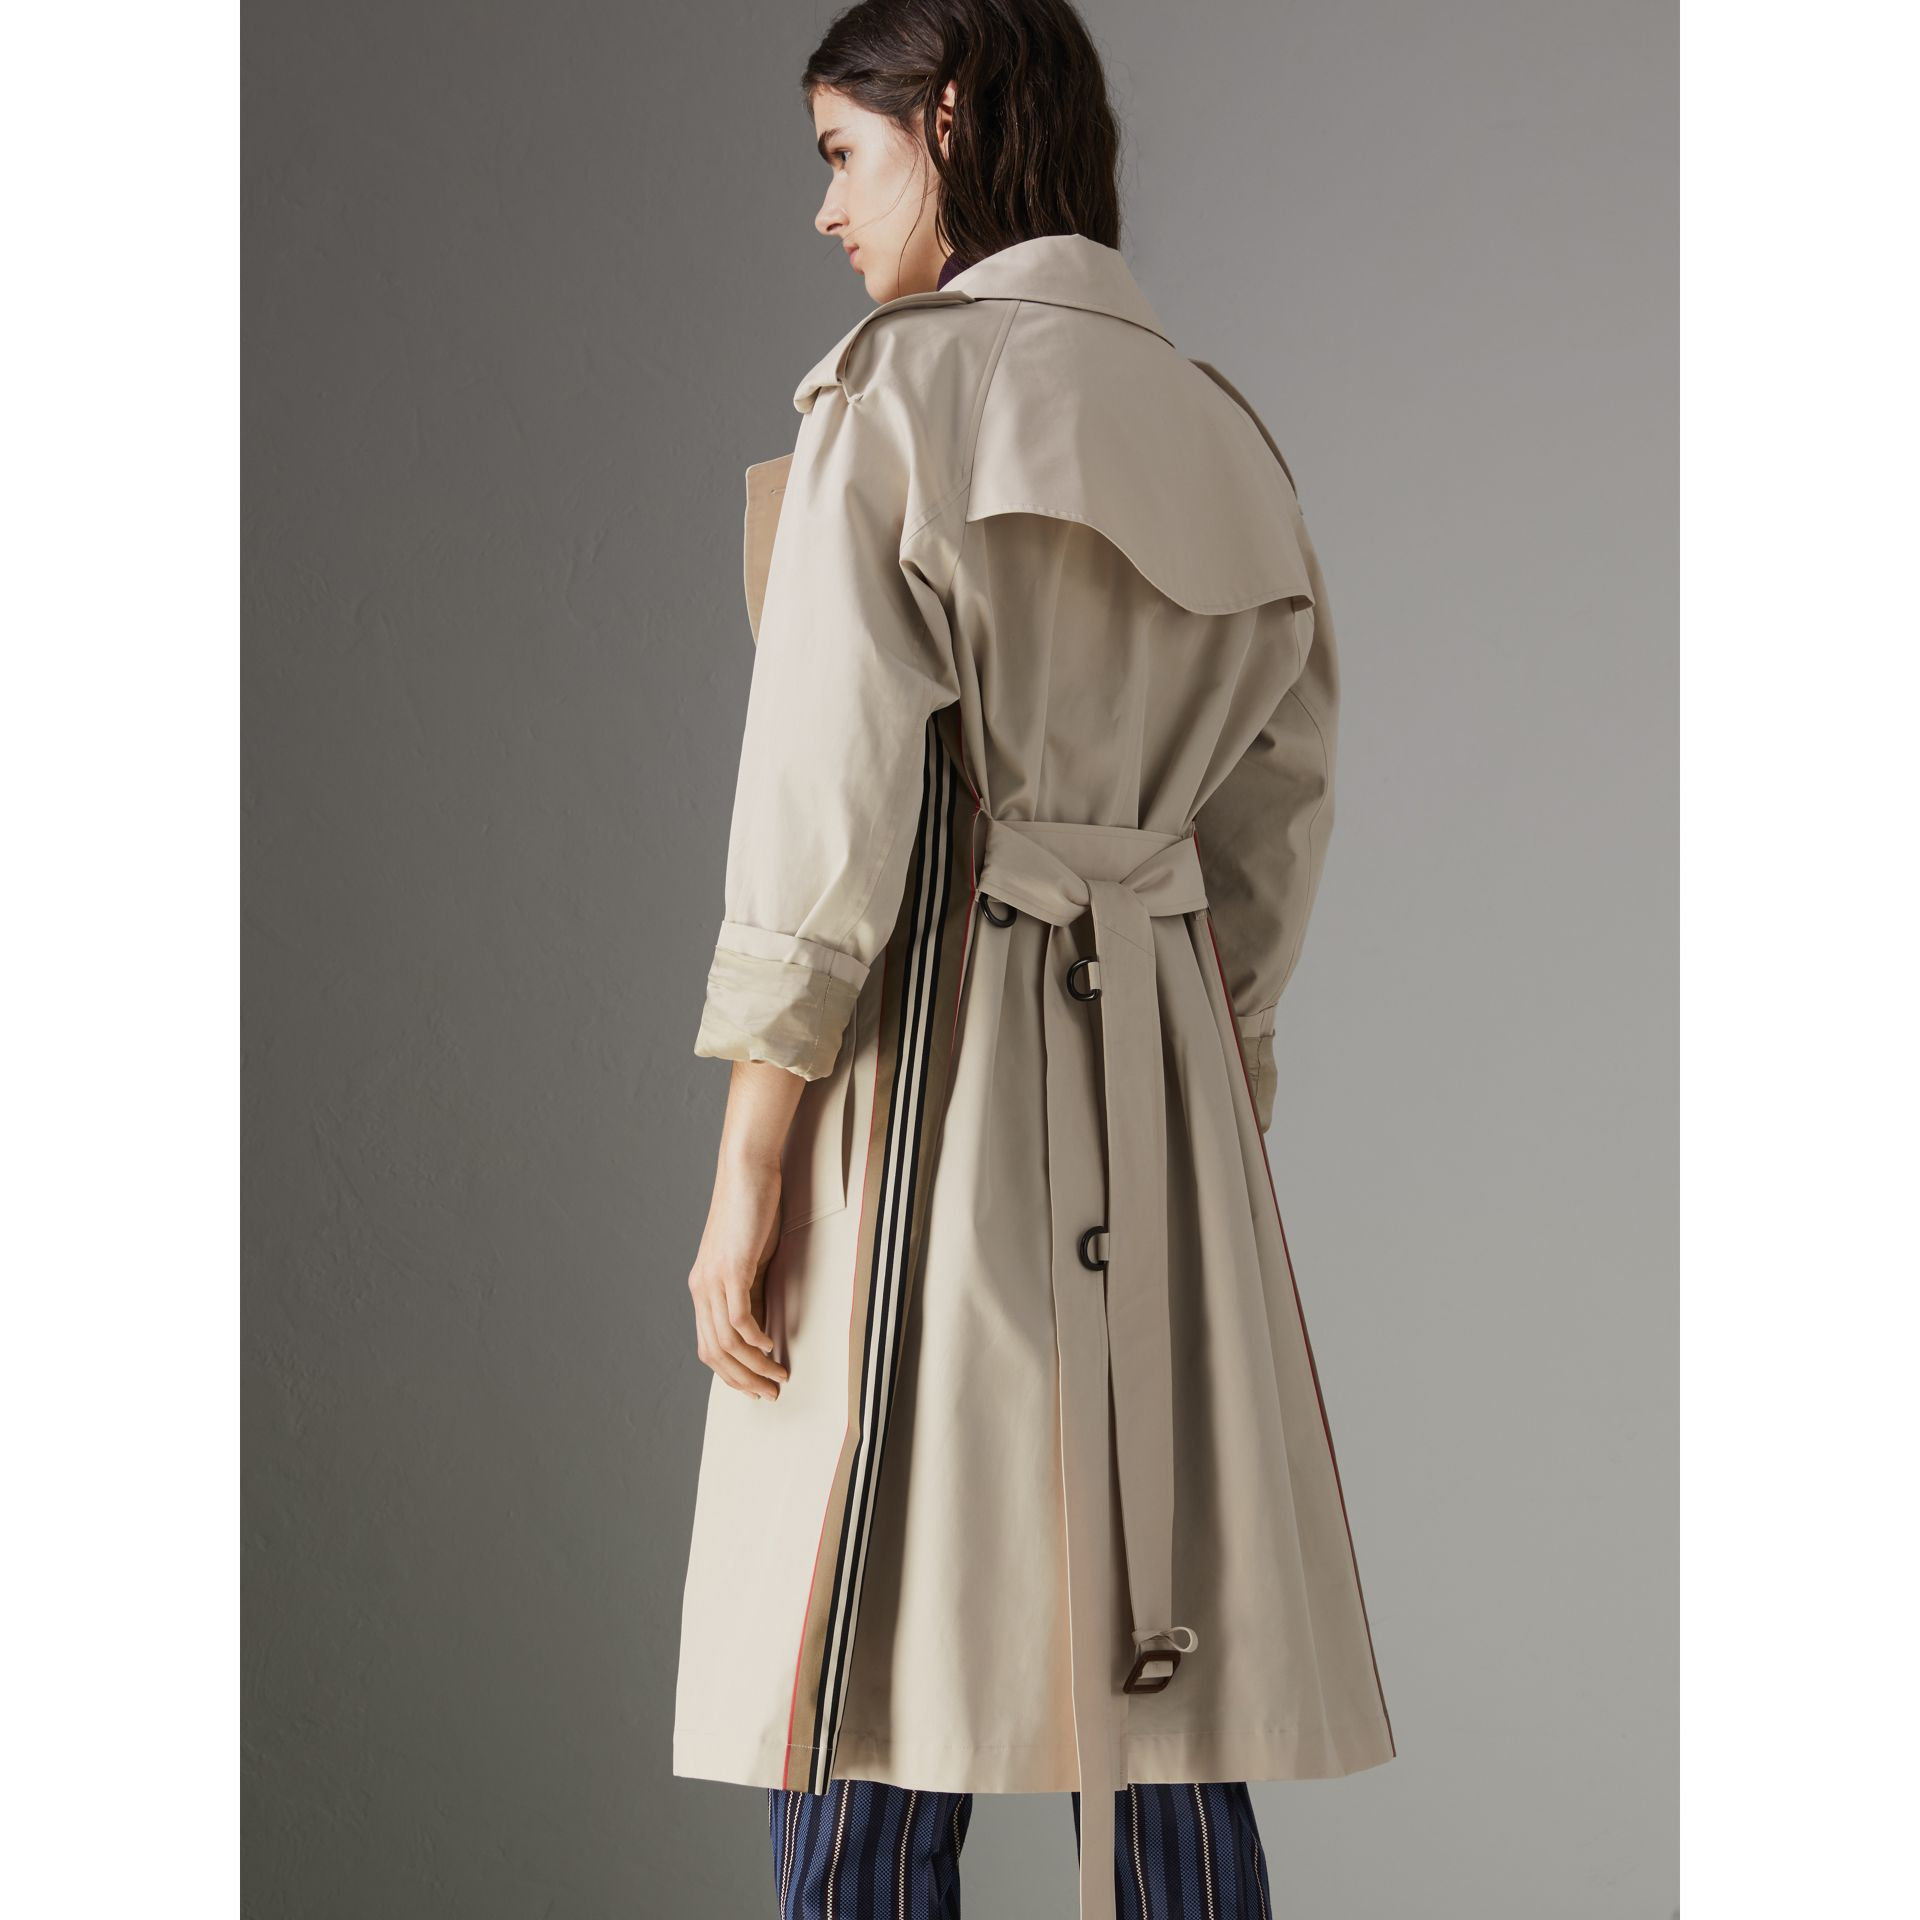 Striped Ribbon Cotton Gabardine Trench Coat in Stone - Women | Burberry Canada - gallery image 2